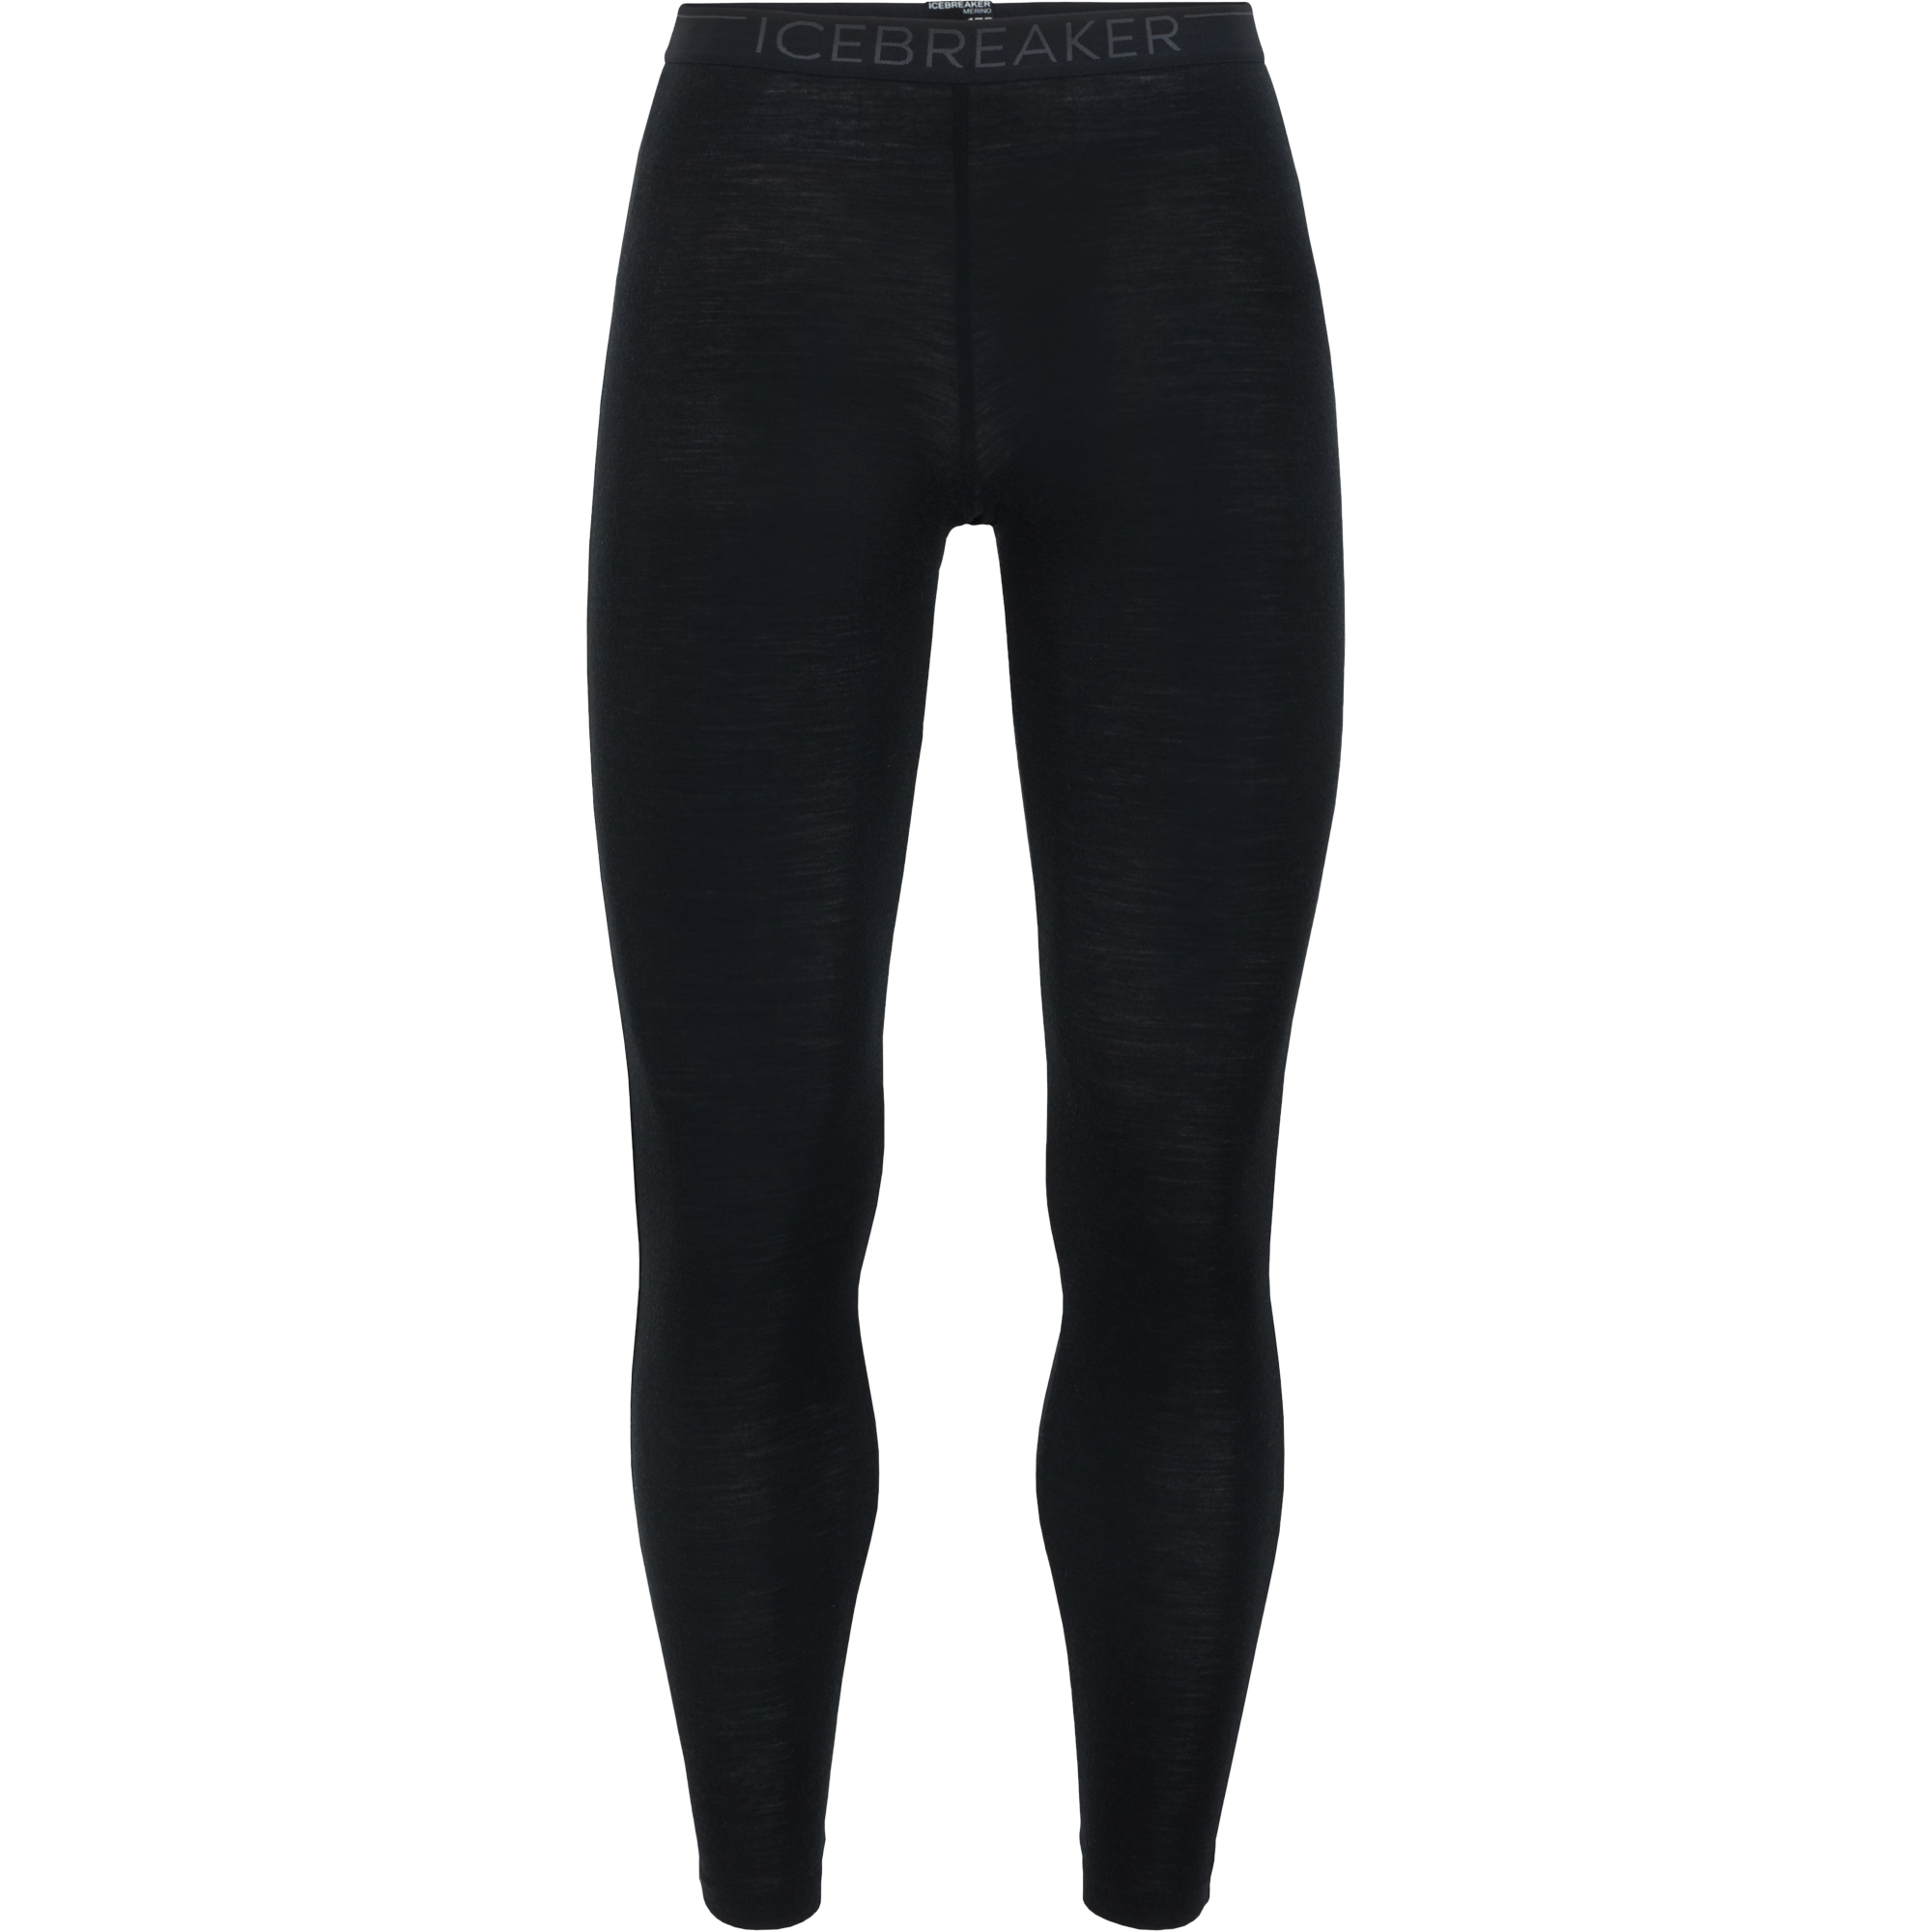 Icebreaker Leggings Everyday Merino schwarz monsoon